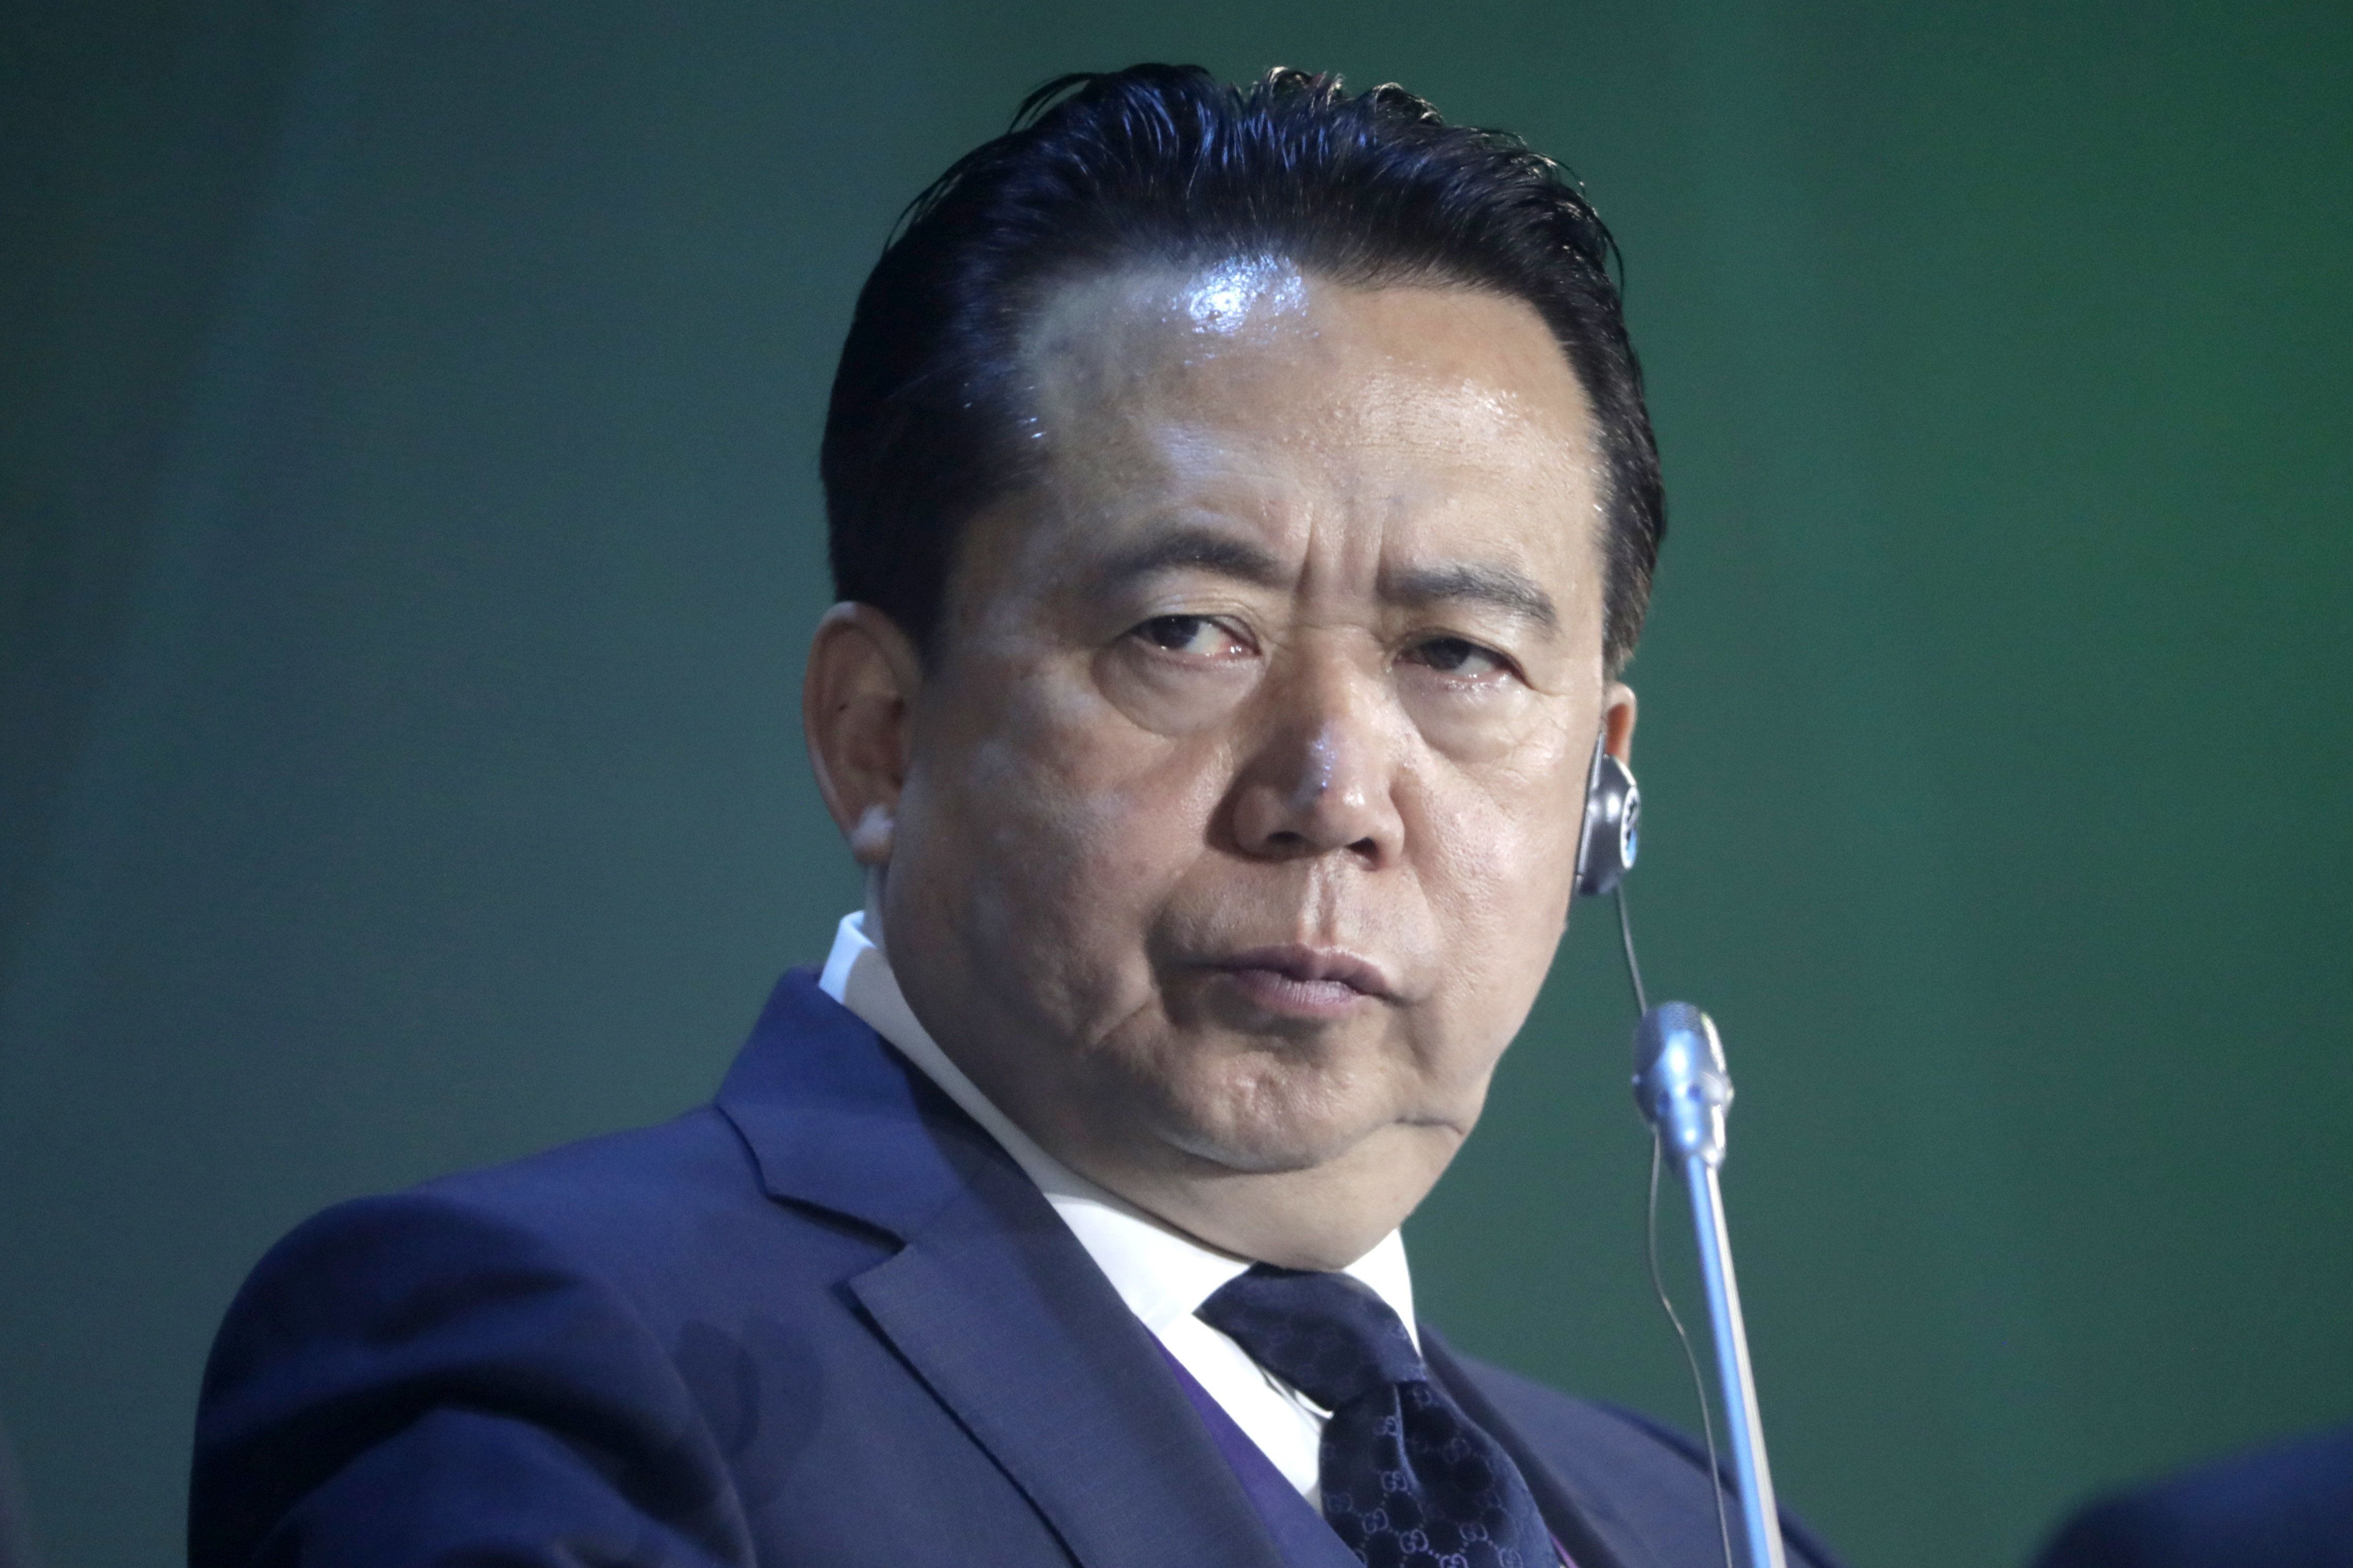 MOSCOW, RUSSIA  JULY 6, 2018: Interpol President Meng Hongwei at an International Cybersecurity Congress at Moscow's World Trade Centre. Mikhail Metzel/TASS (Photo by Mikhail Metzel\TASS via Getty Images)